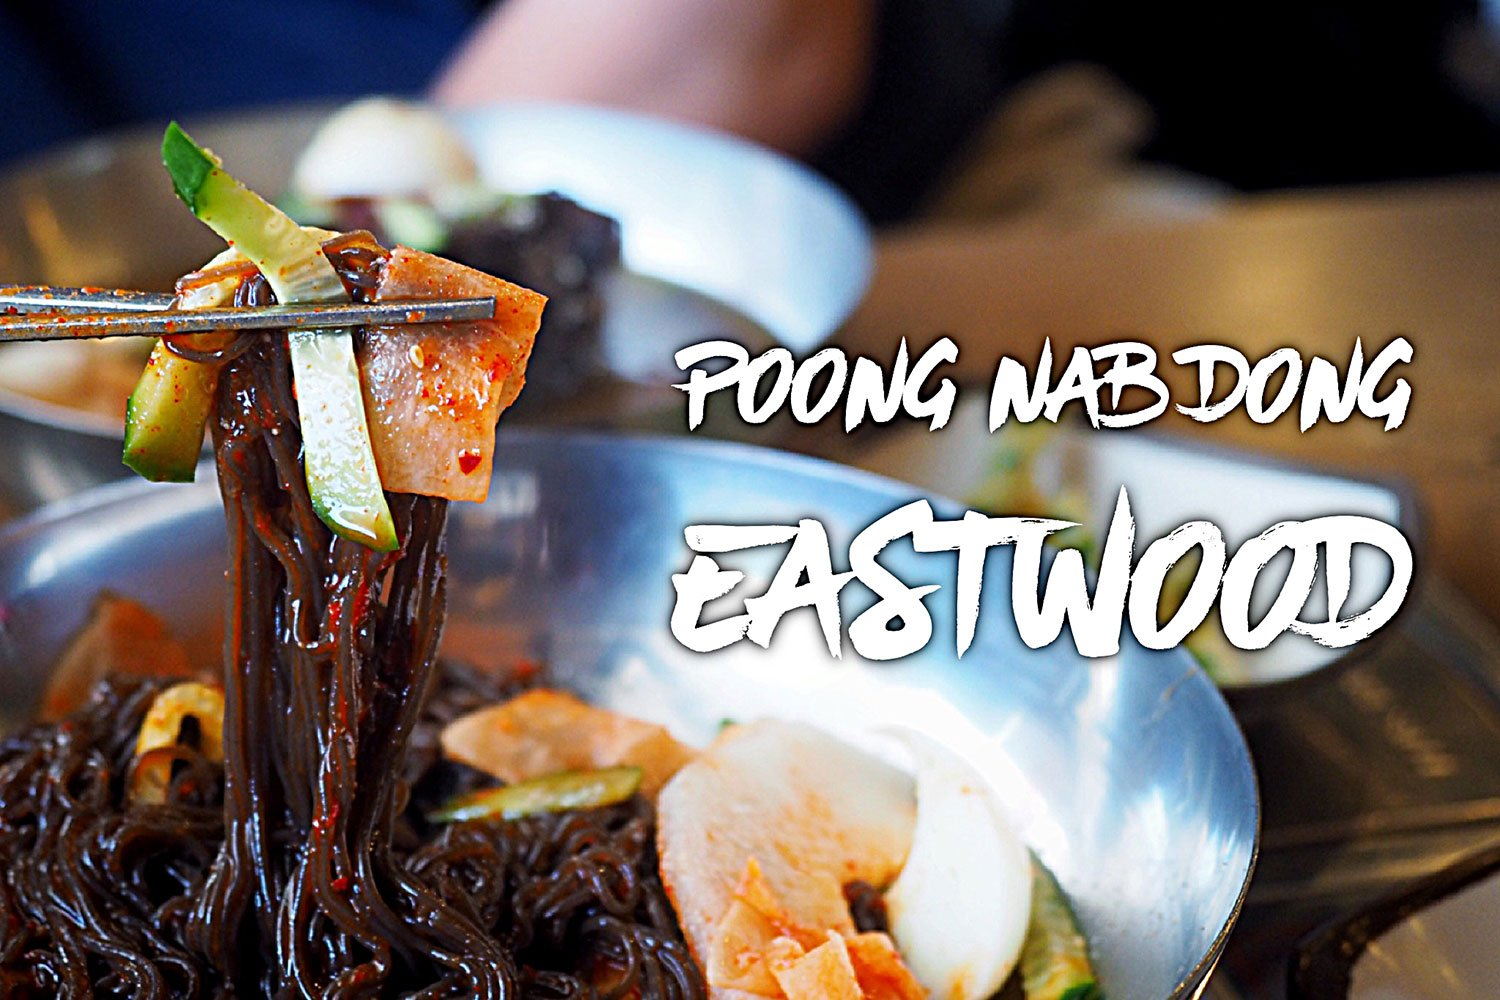 Sydney Food Blog Review of Poong Nab Dong, Eastwood